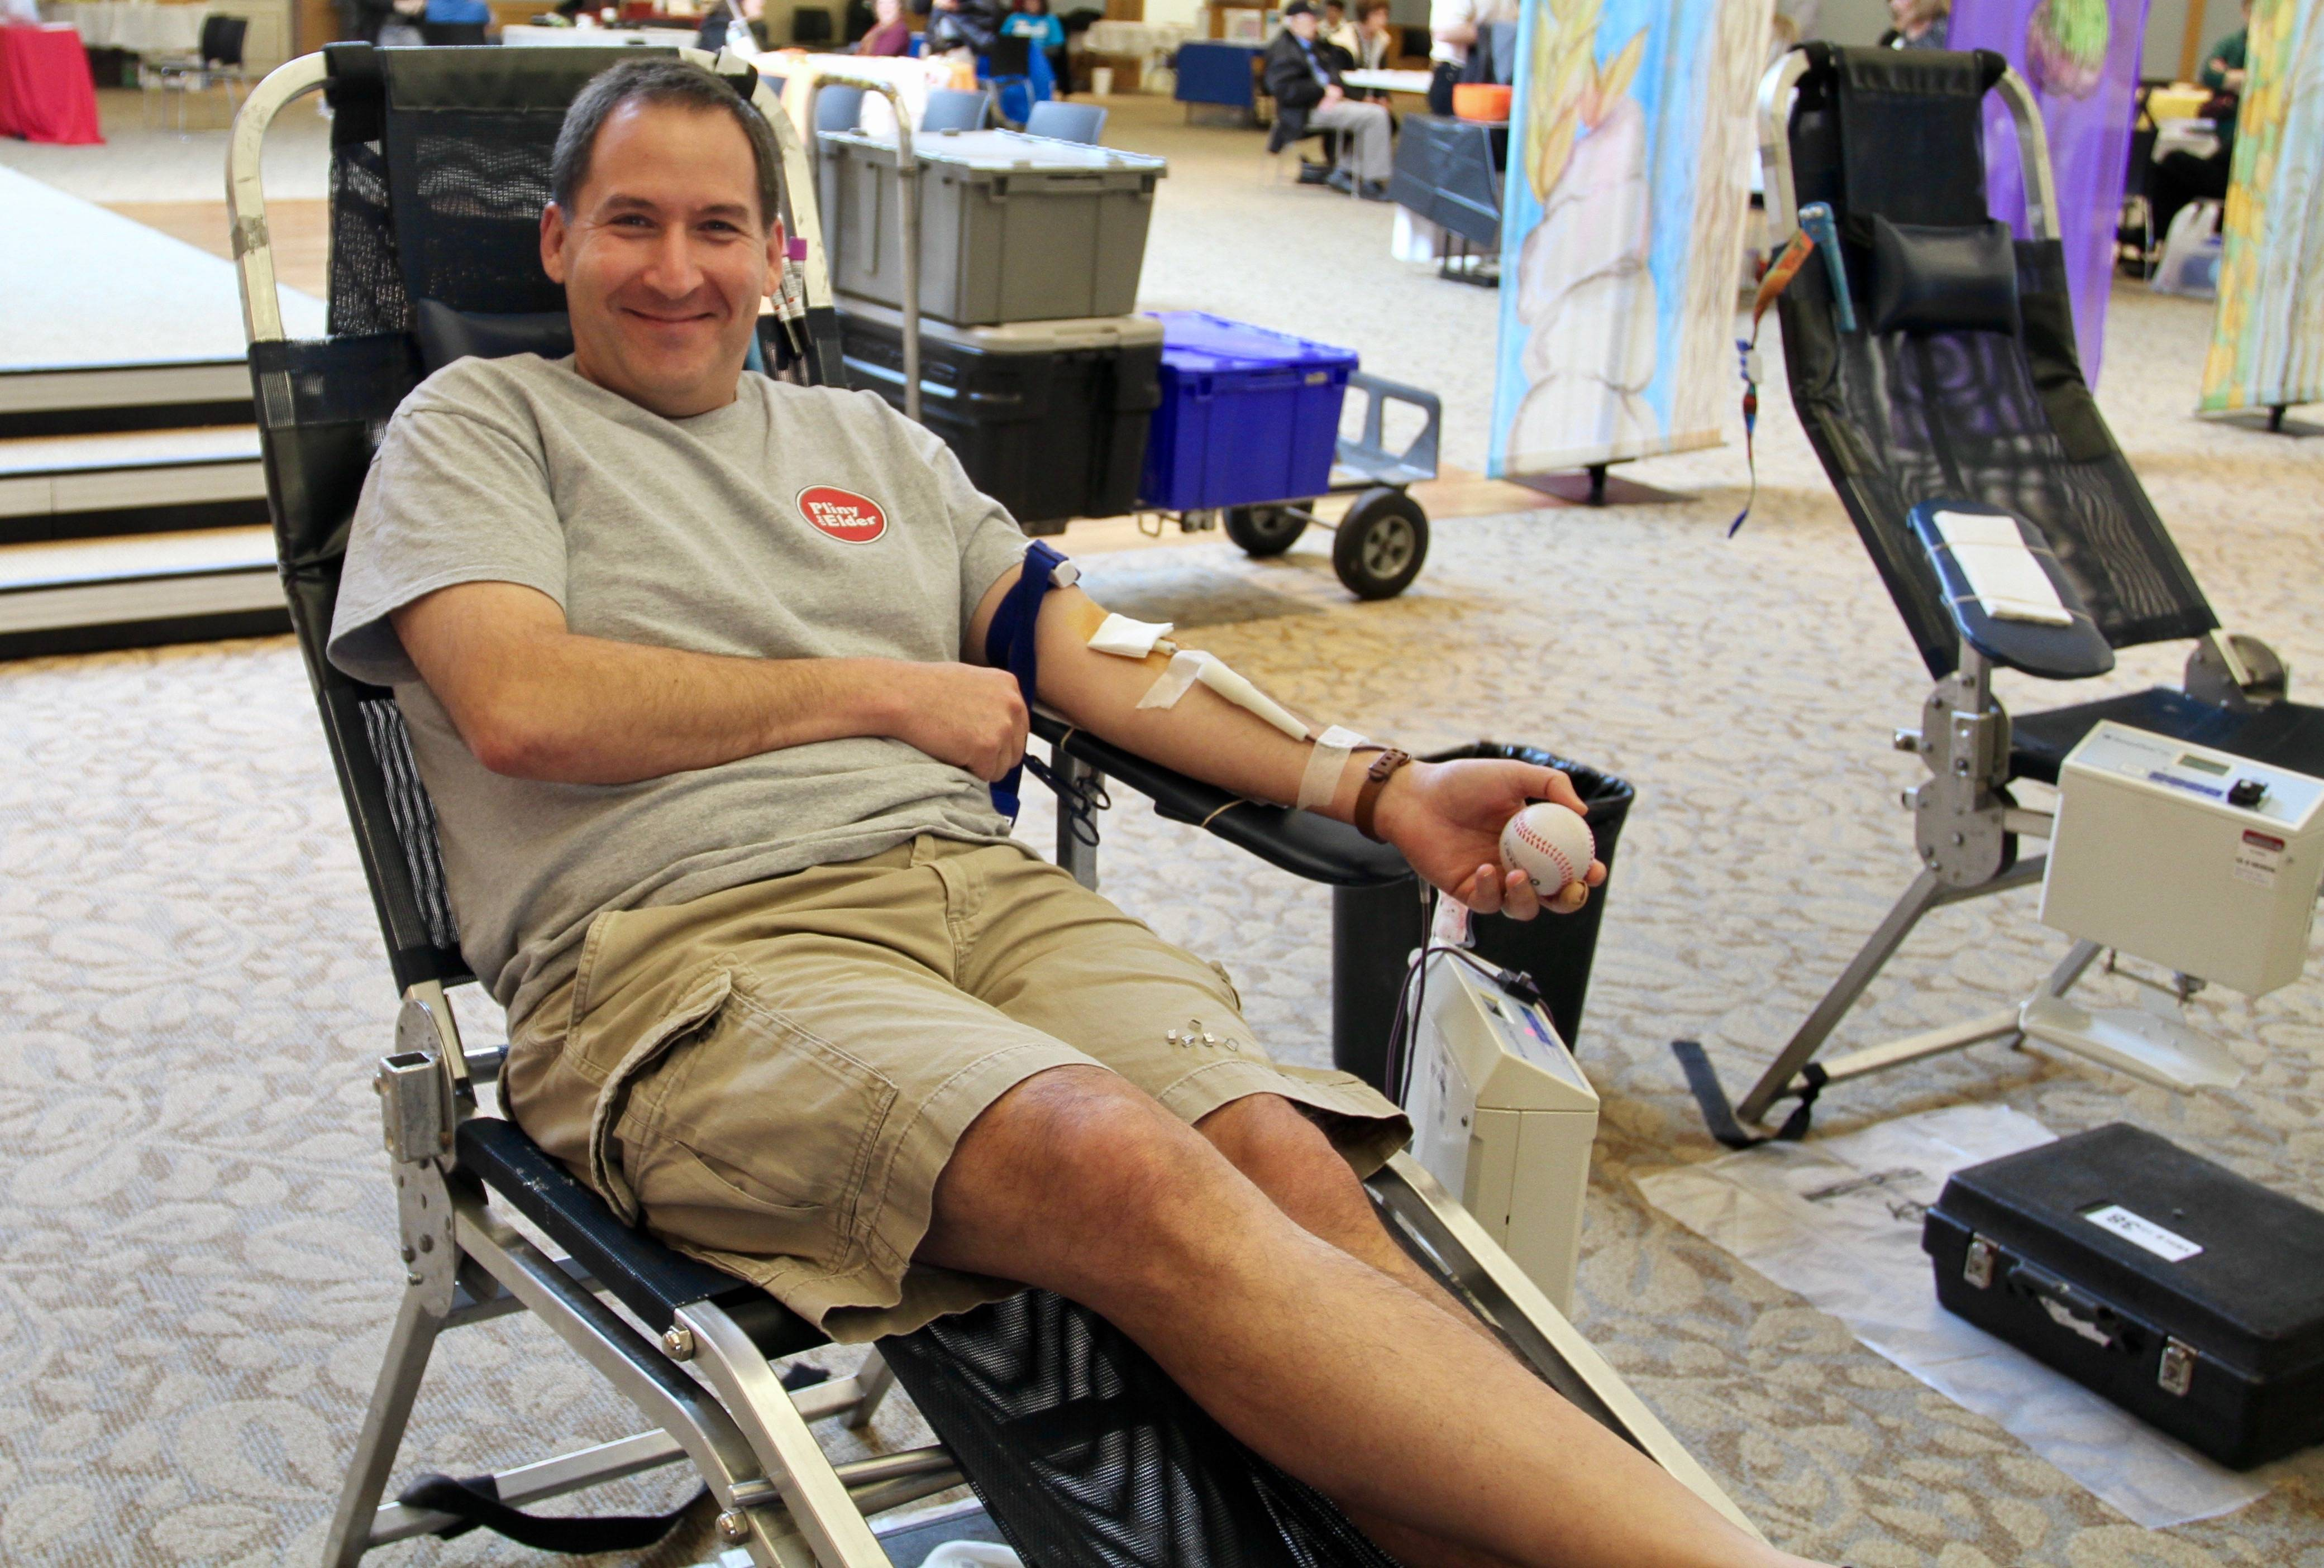 Jeff Silberstein of Buffalo Grove donates during a LifeSource blood drive, sponsored by Congregation B'nai Jehoshua Beth Elohim, in Northbrook earlier this year.